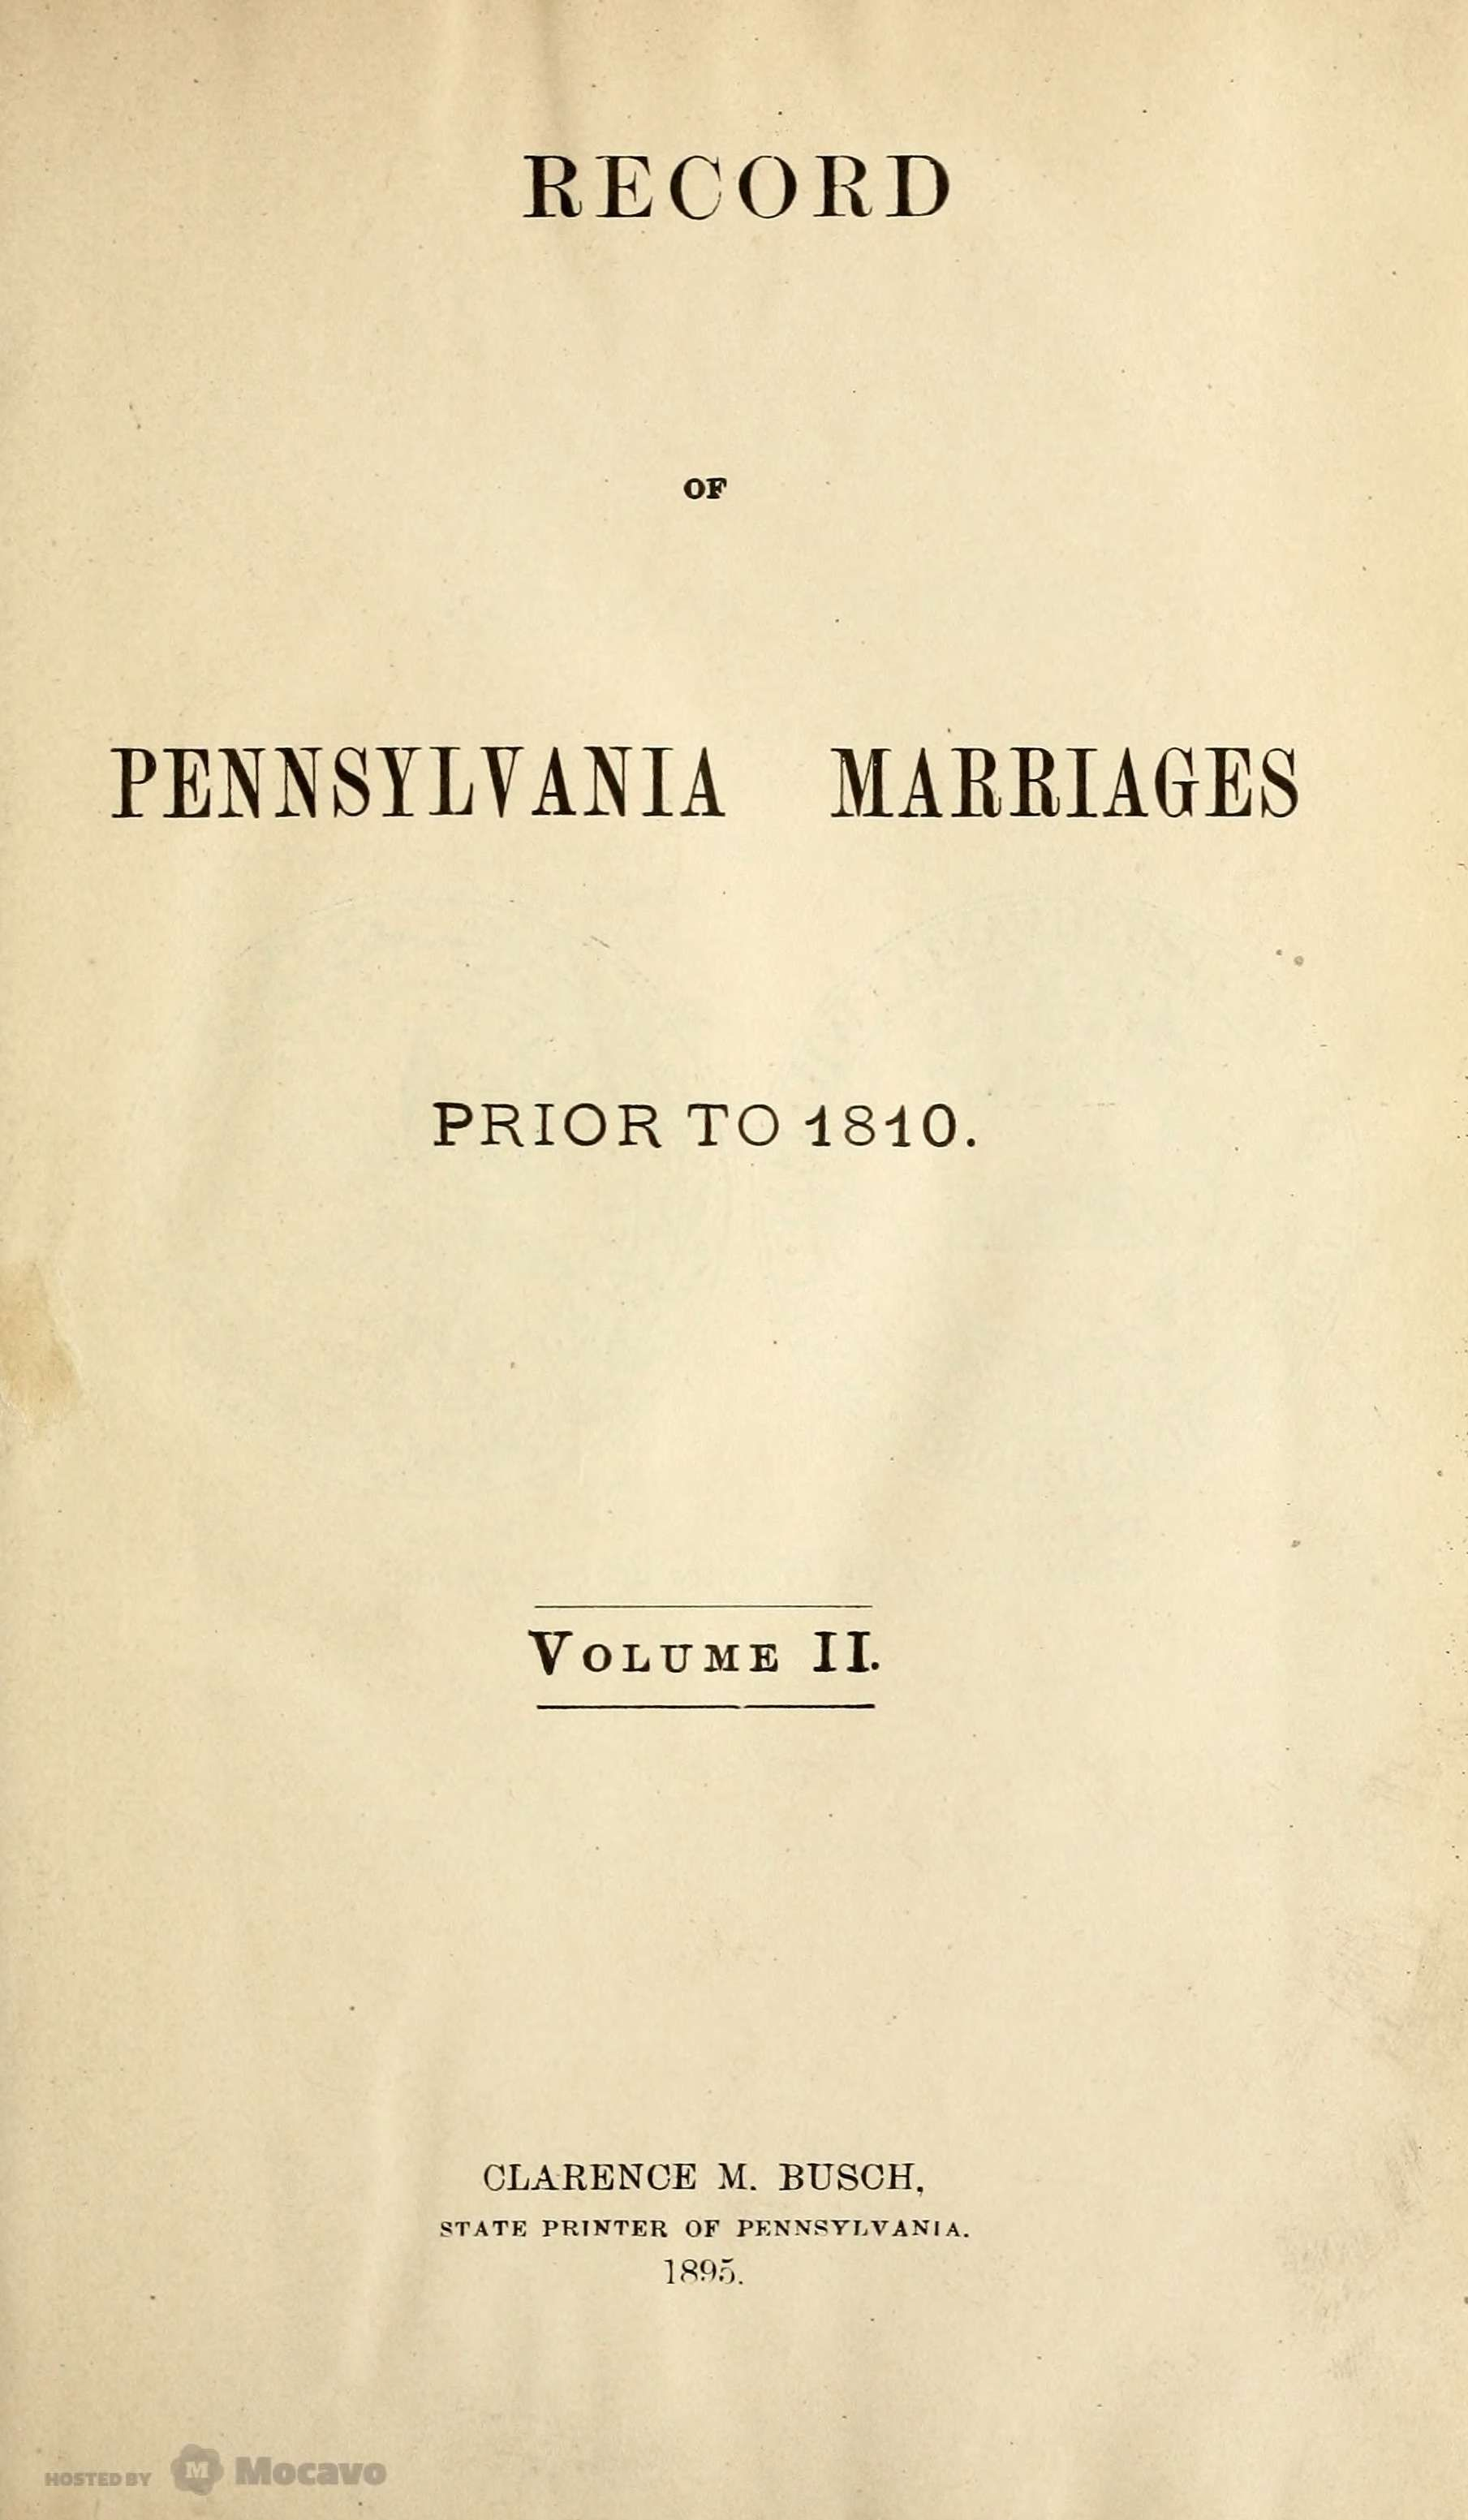 Record Of Pennsylvania Marriages Prior To 1810 List Of Officers Of The Colonies On The Delaware And The Prov Family Genealogy Genealogy Book Genealogy History